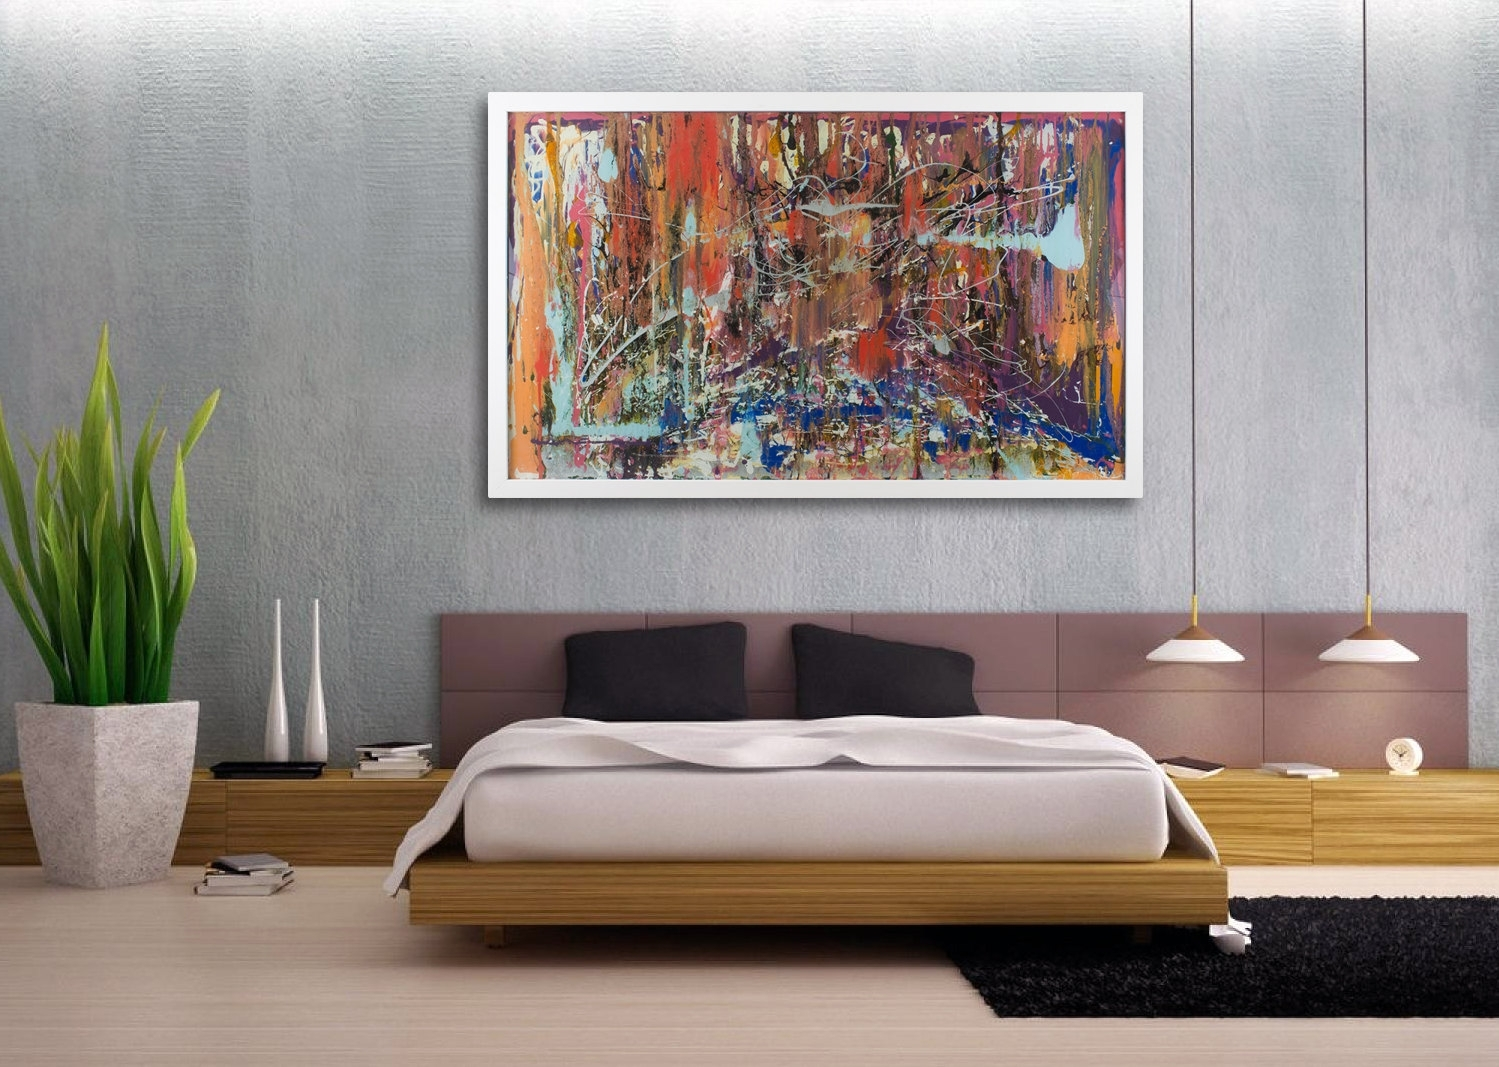 Innovative Way Modern Wall Decor Room — Joanne Russo Homesjoanne With Regard To Most Up To Date Inexpensive Abstract Wall Art (View 15 of 20)